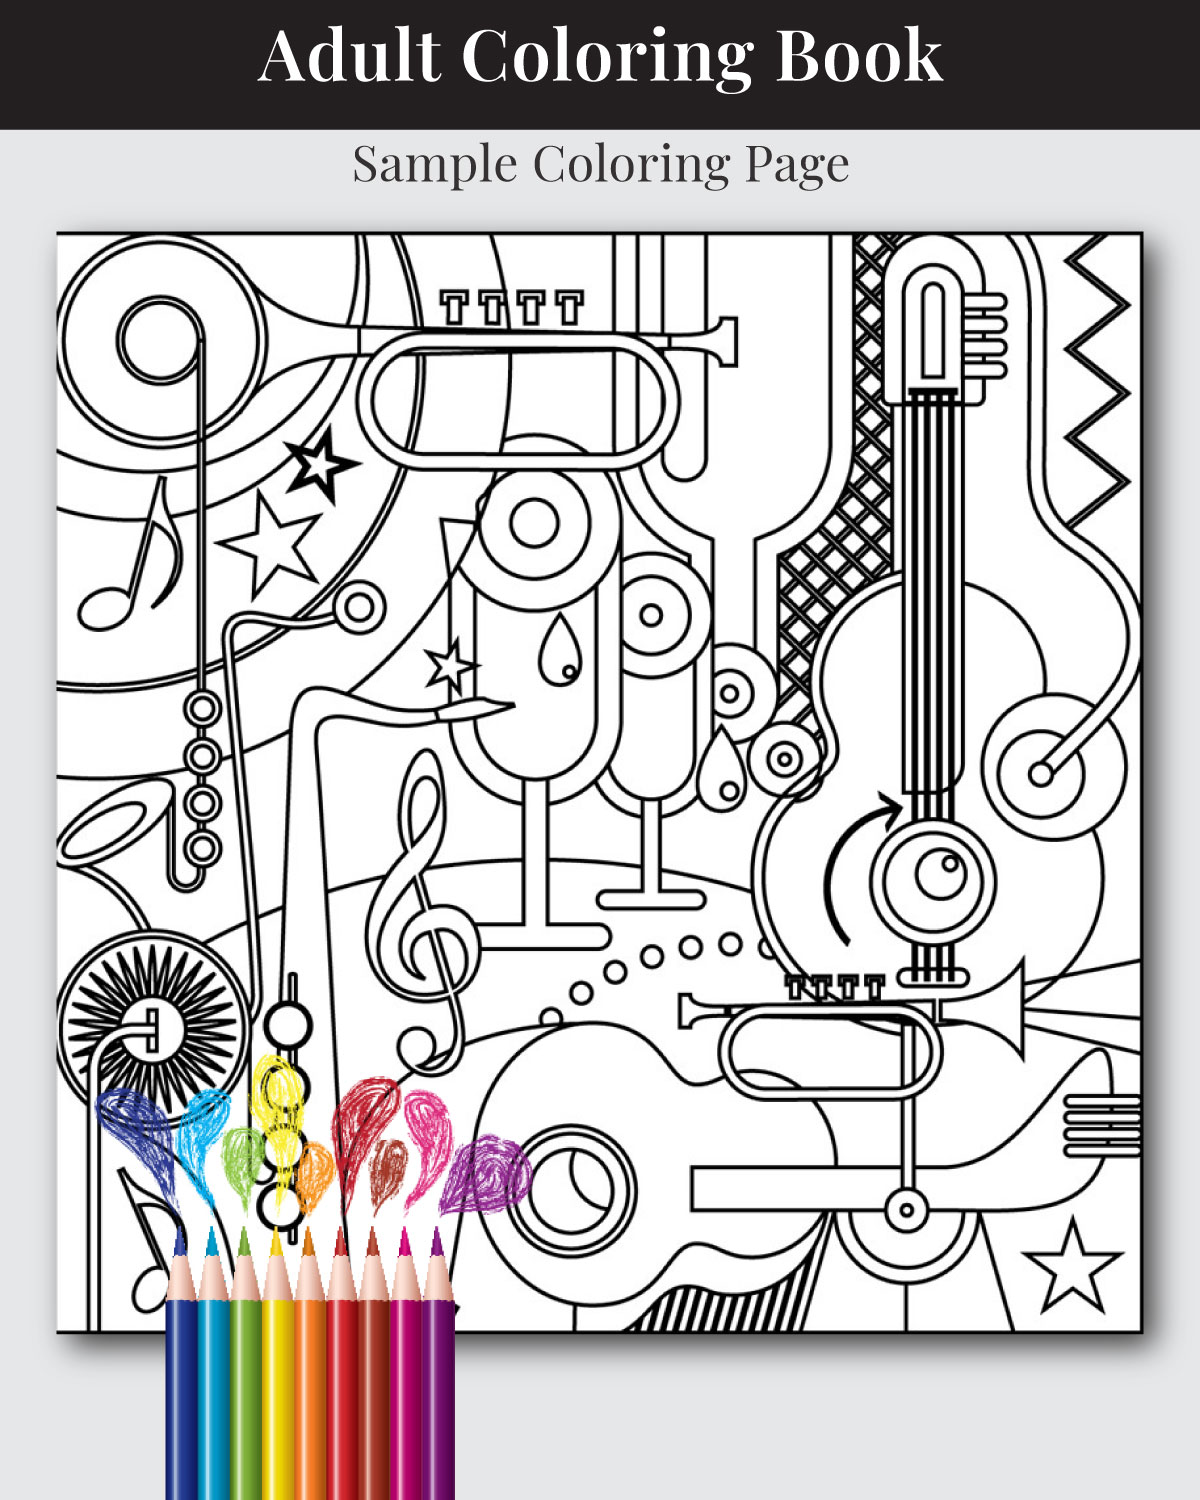 Jazz-Experience-Adult-Coloring-Book-Sample-02